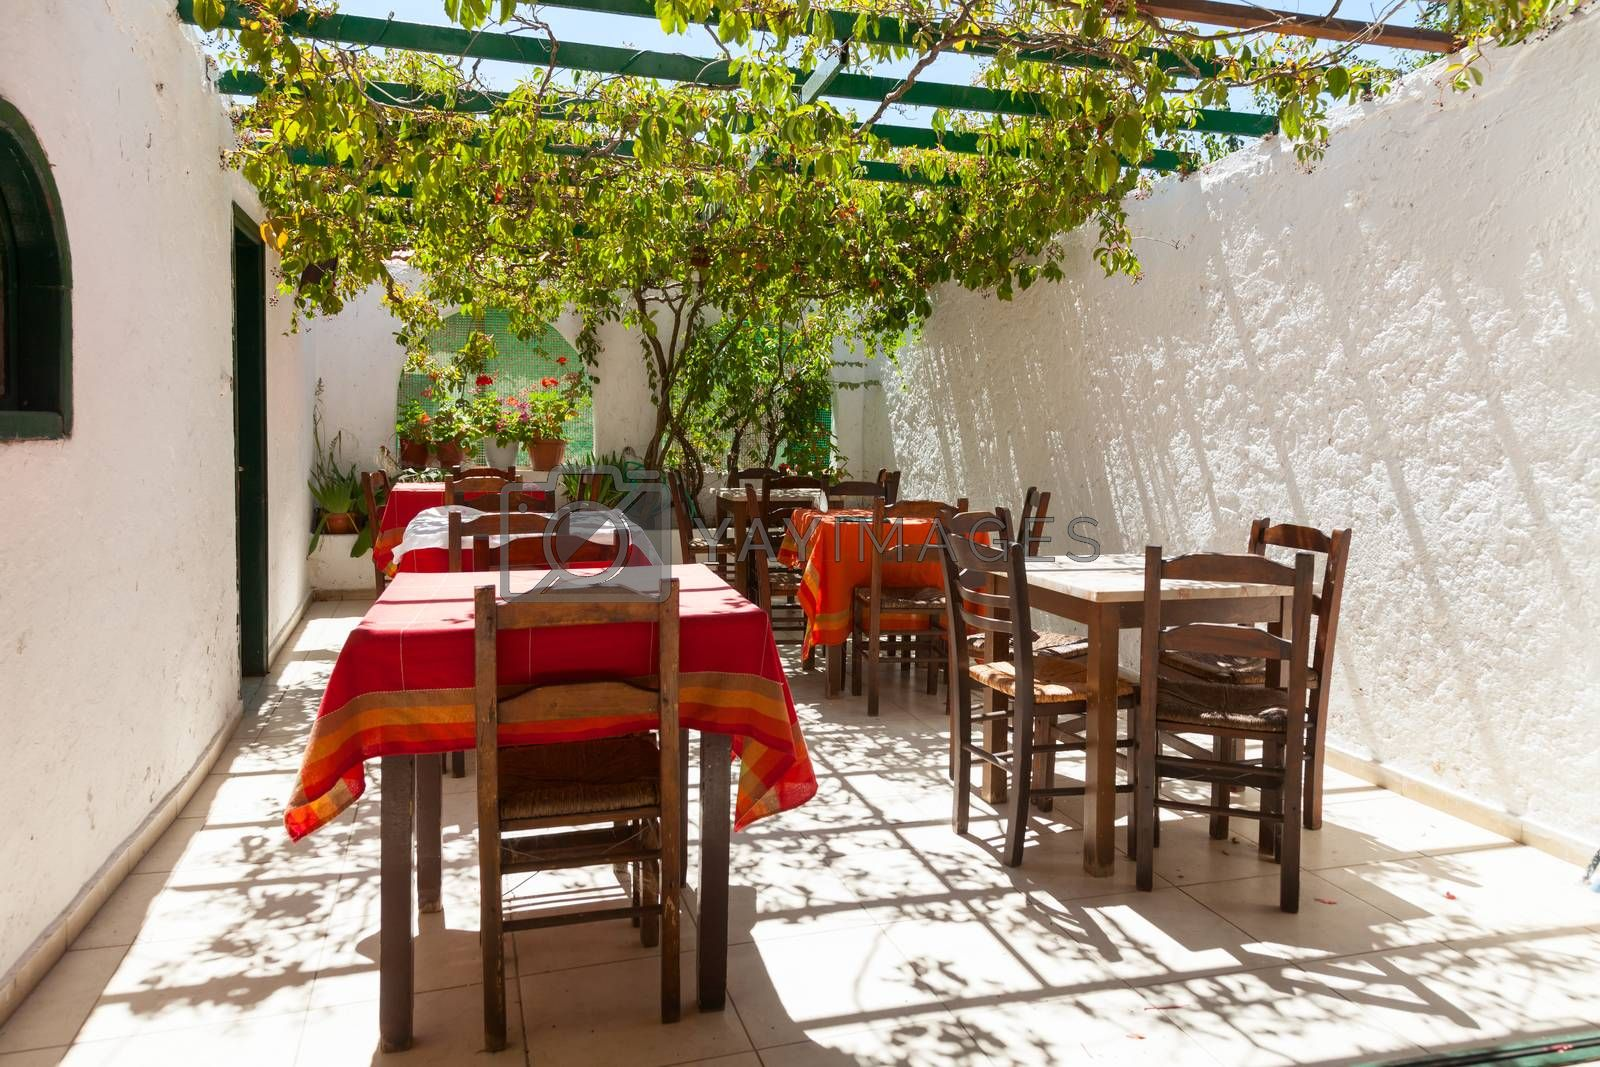 Tables with chairs at typical greek cafe